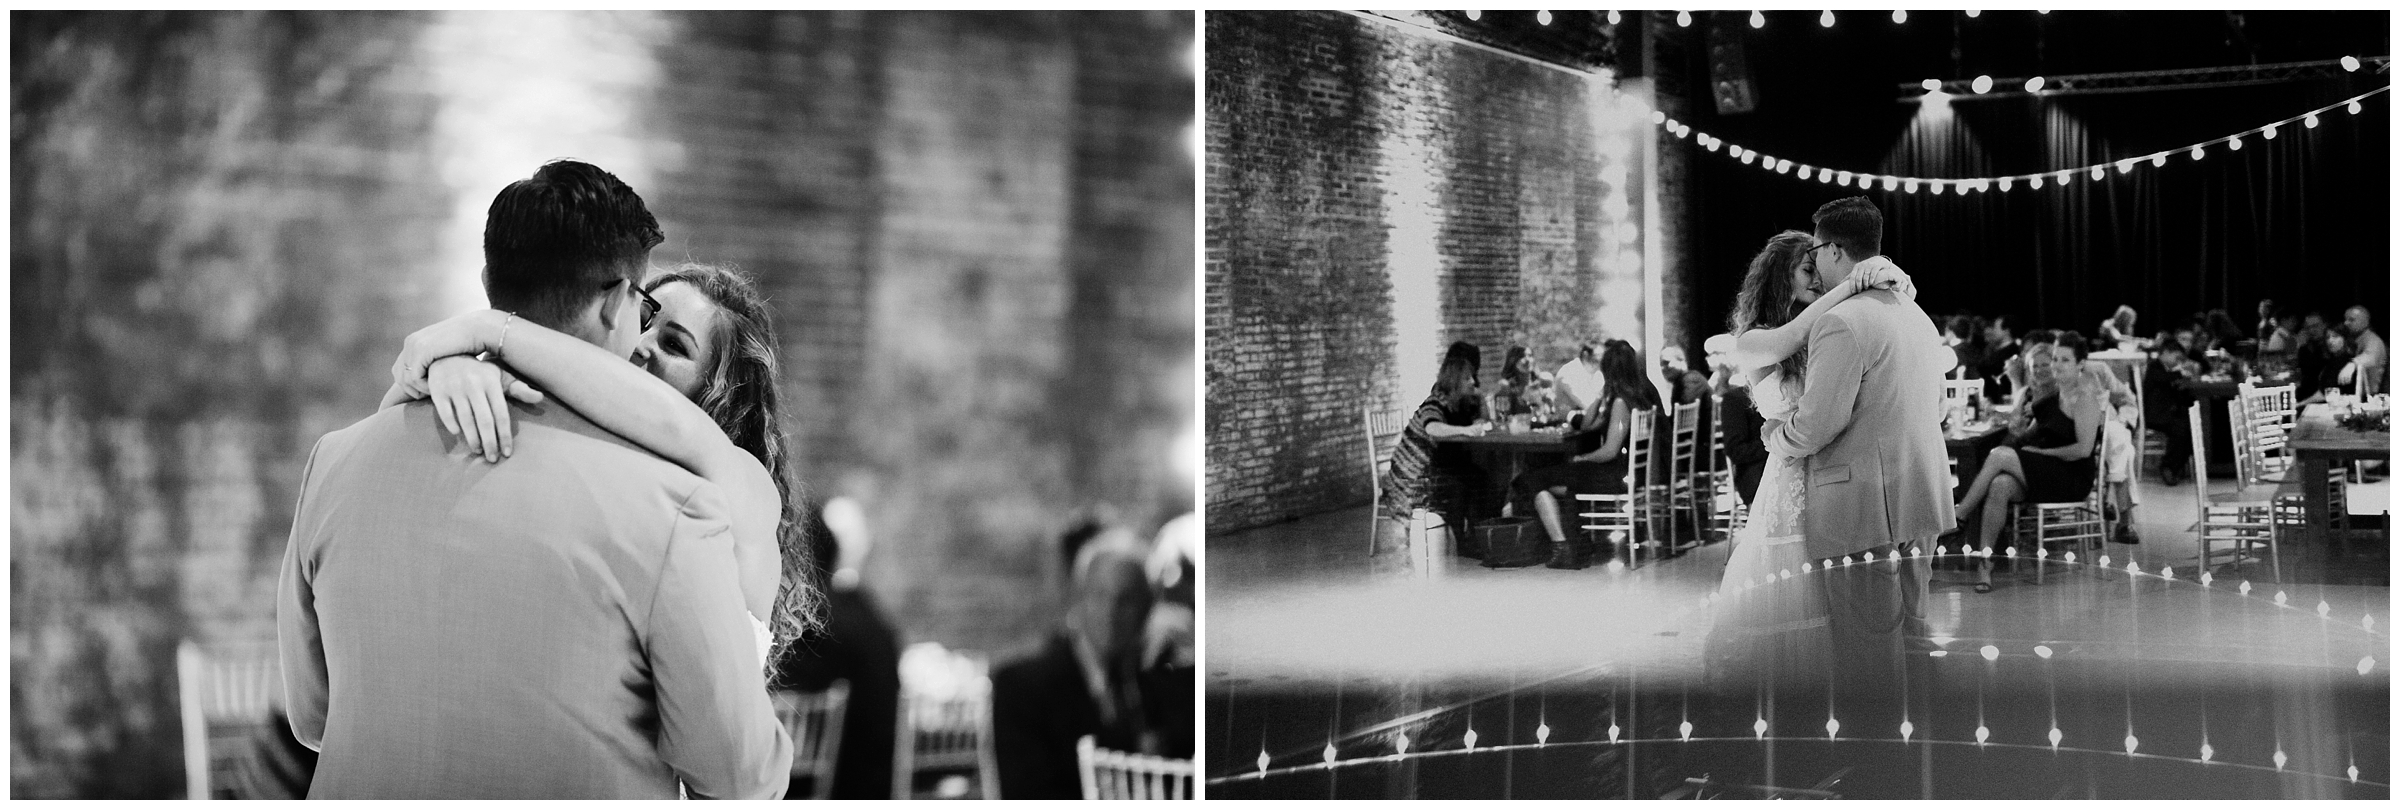 bride and grooms first dance at industrial modern wedding reception